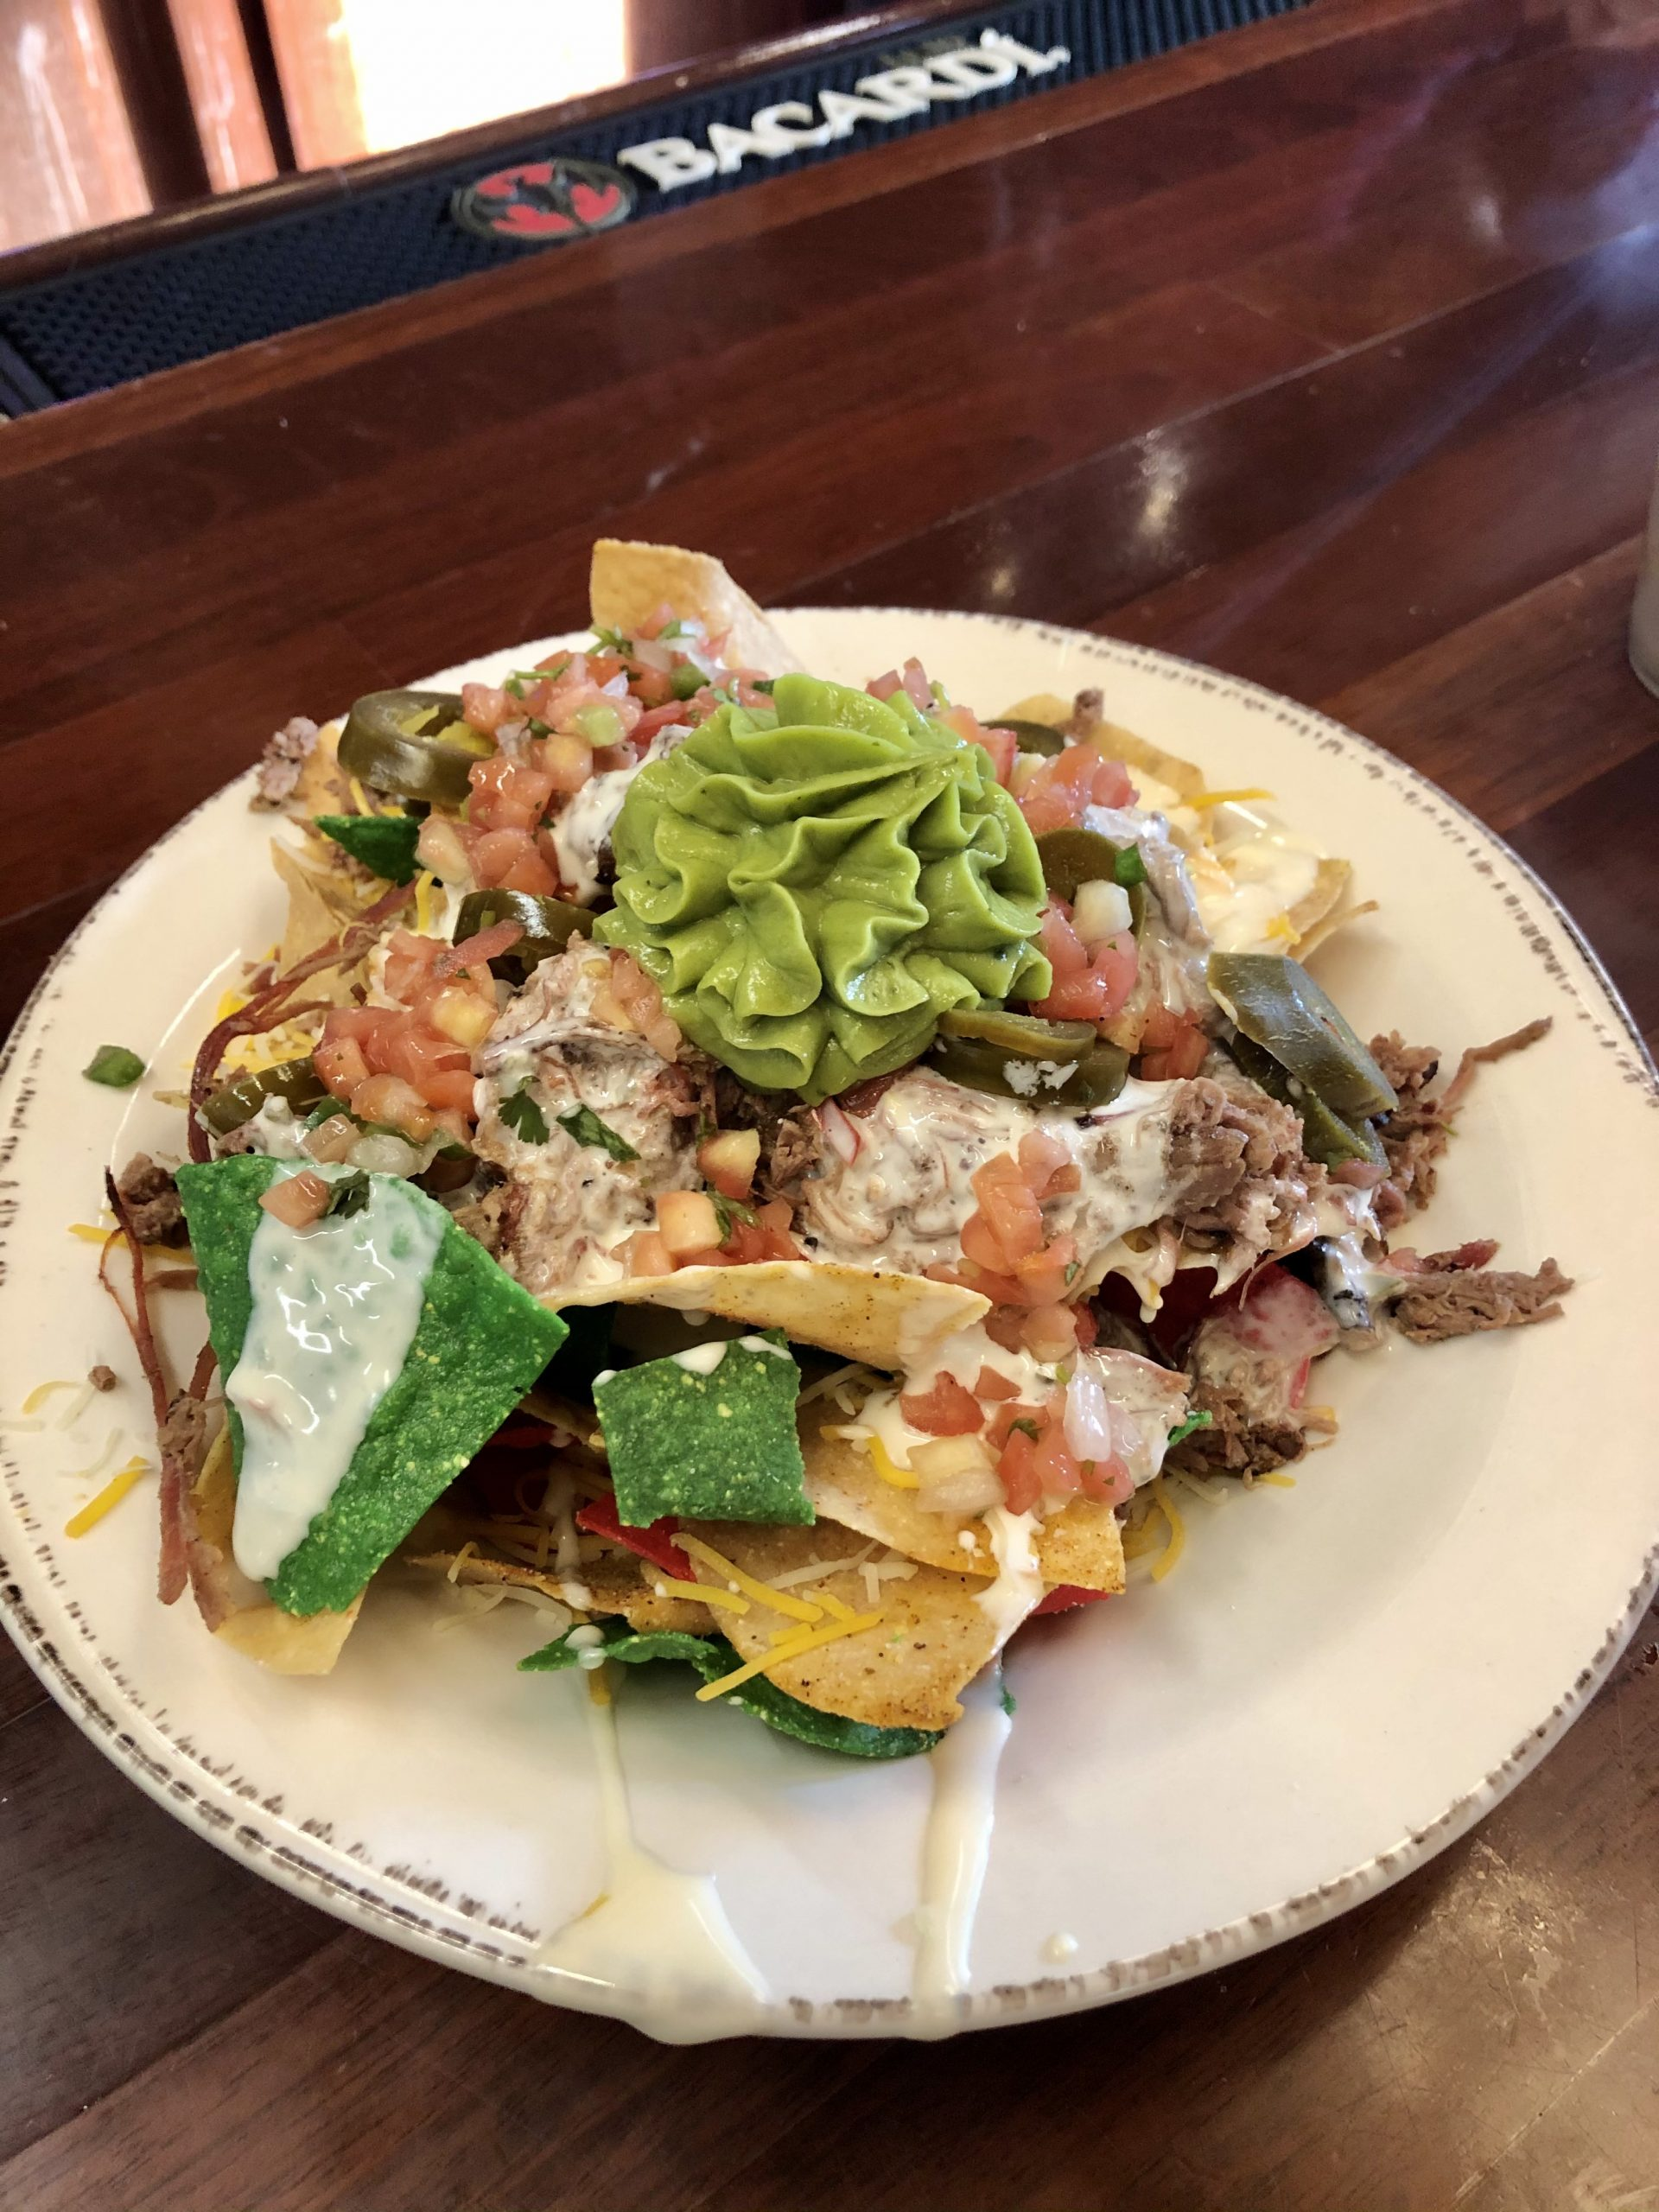 Plate of nachos with queso and lots of other yummy toppings